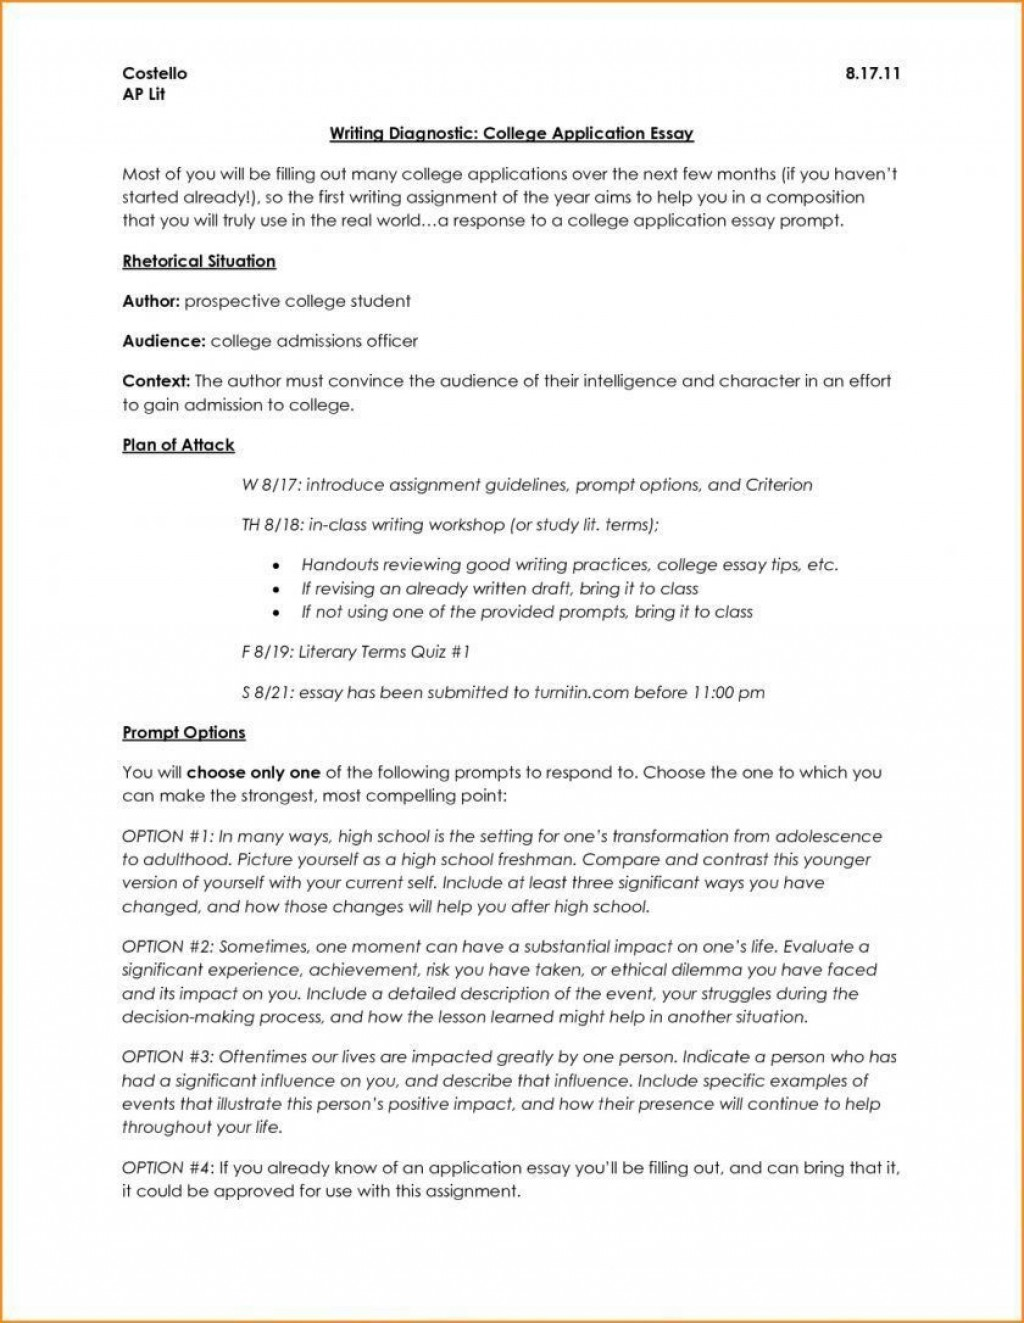 006 Surprising College Application Essay Outline Example Idea  Admission Format Heading Narrative TemplateLarge